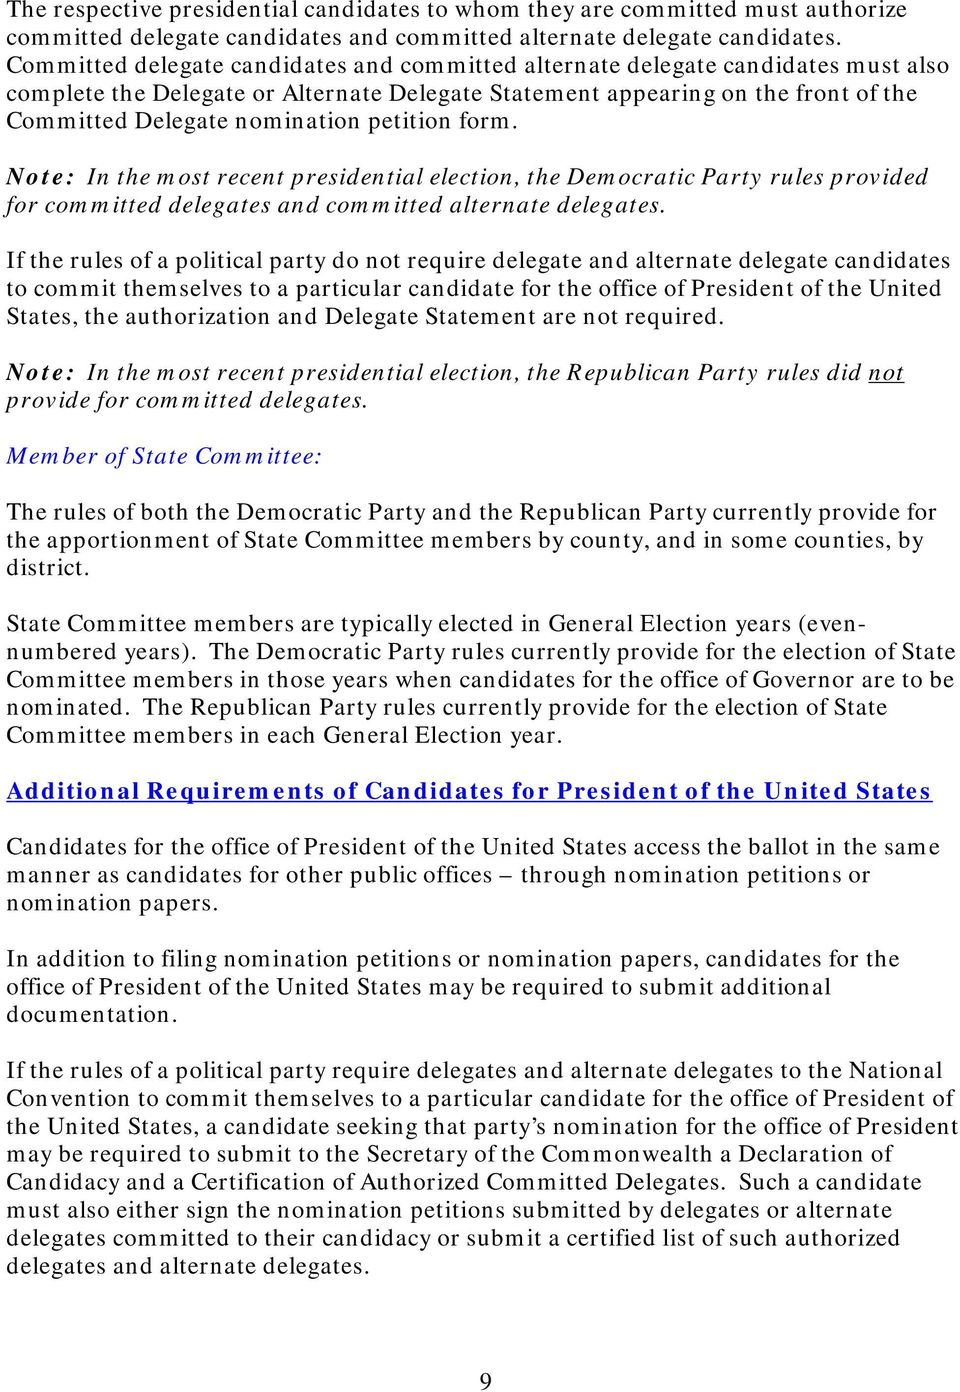 petition form. Note: In the most recent presidential election, the Democratic Party rules provided for committed delegates and committed alternate delegates.